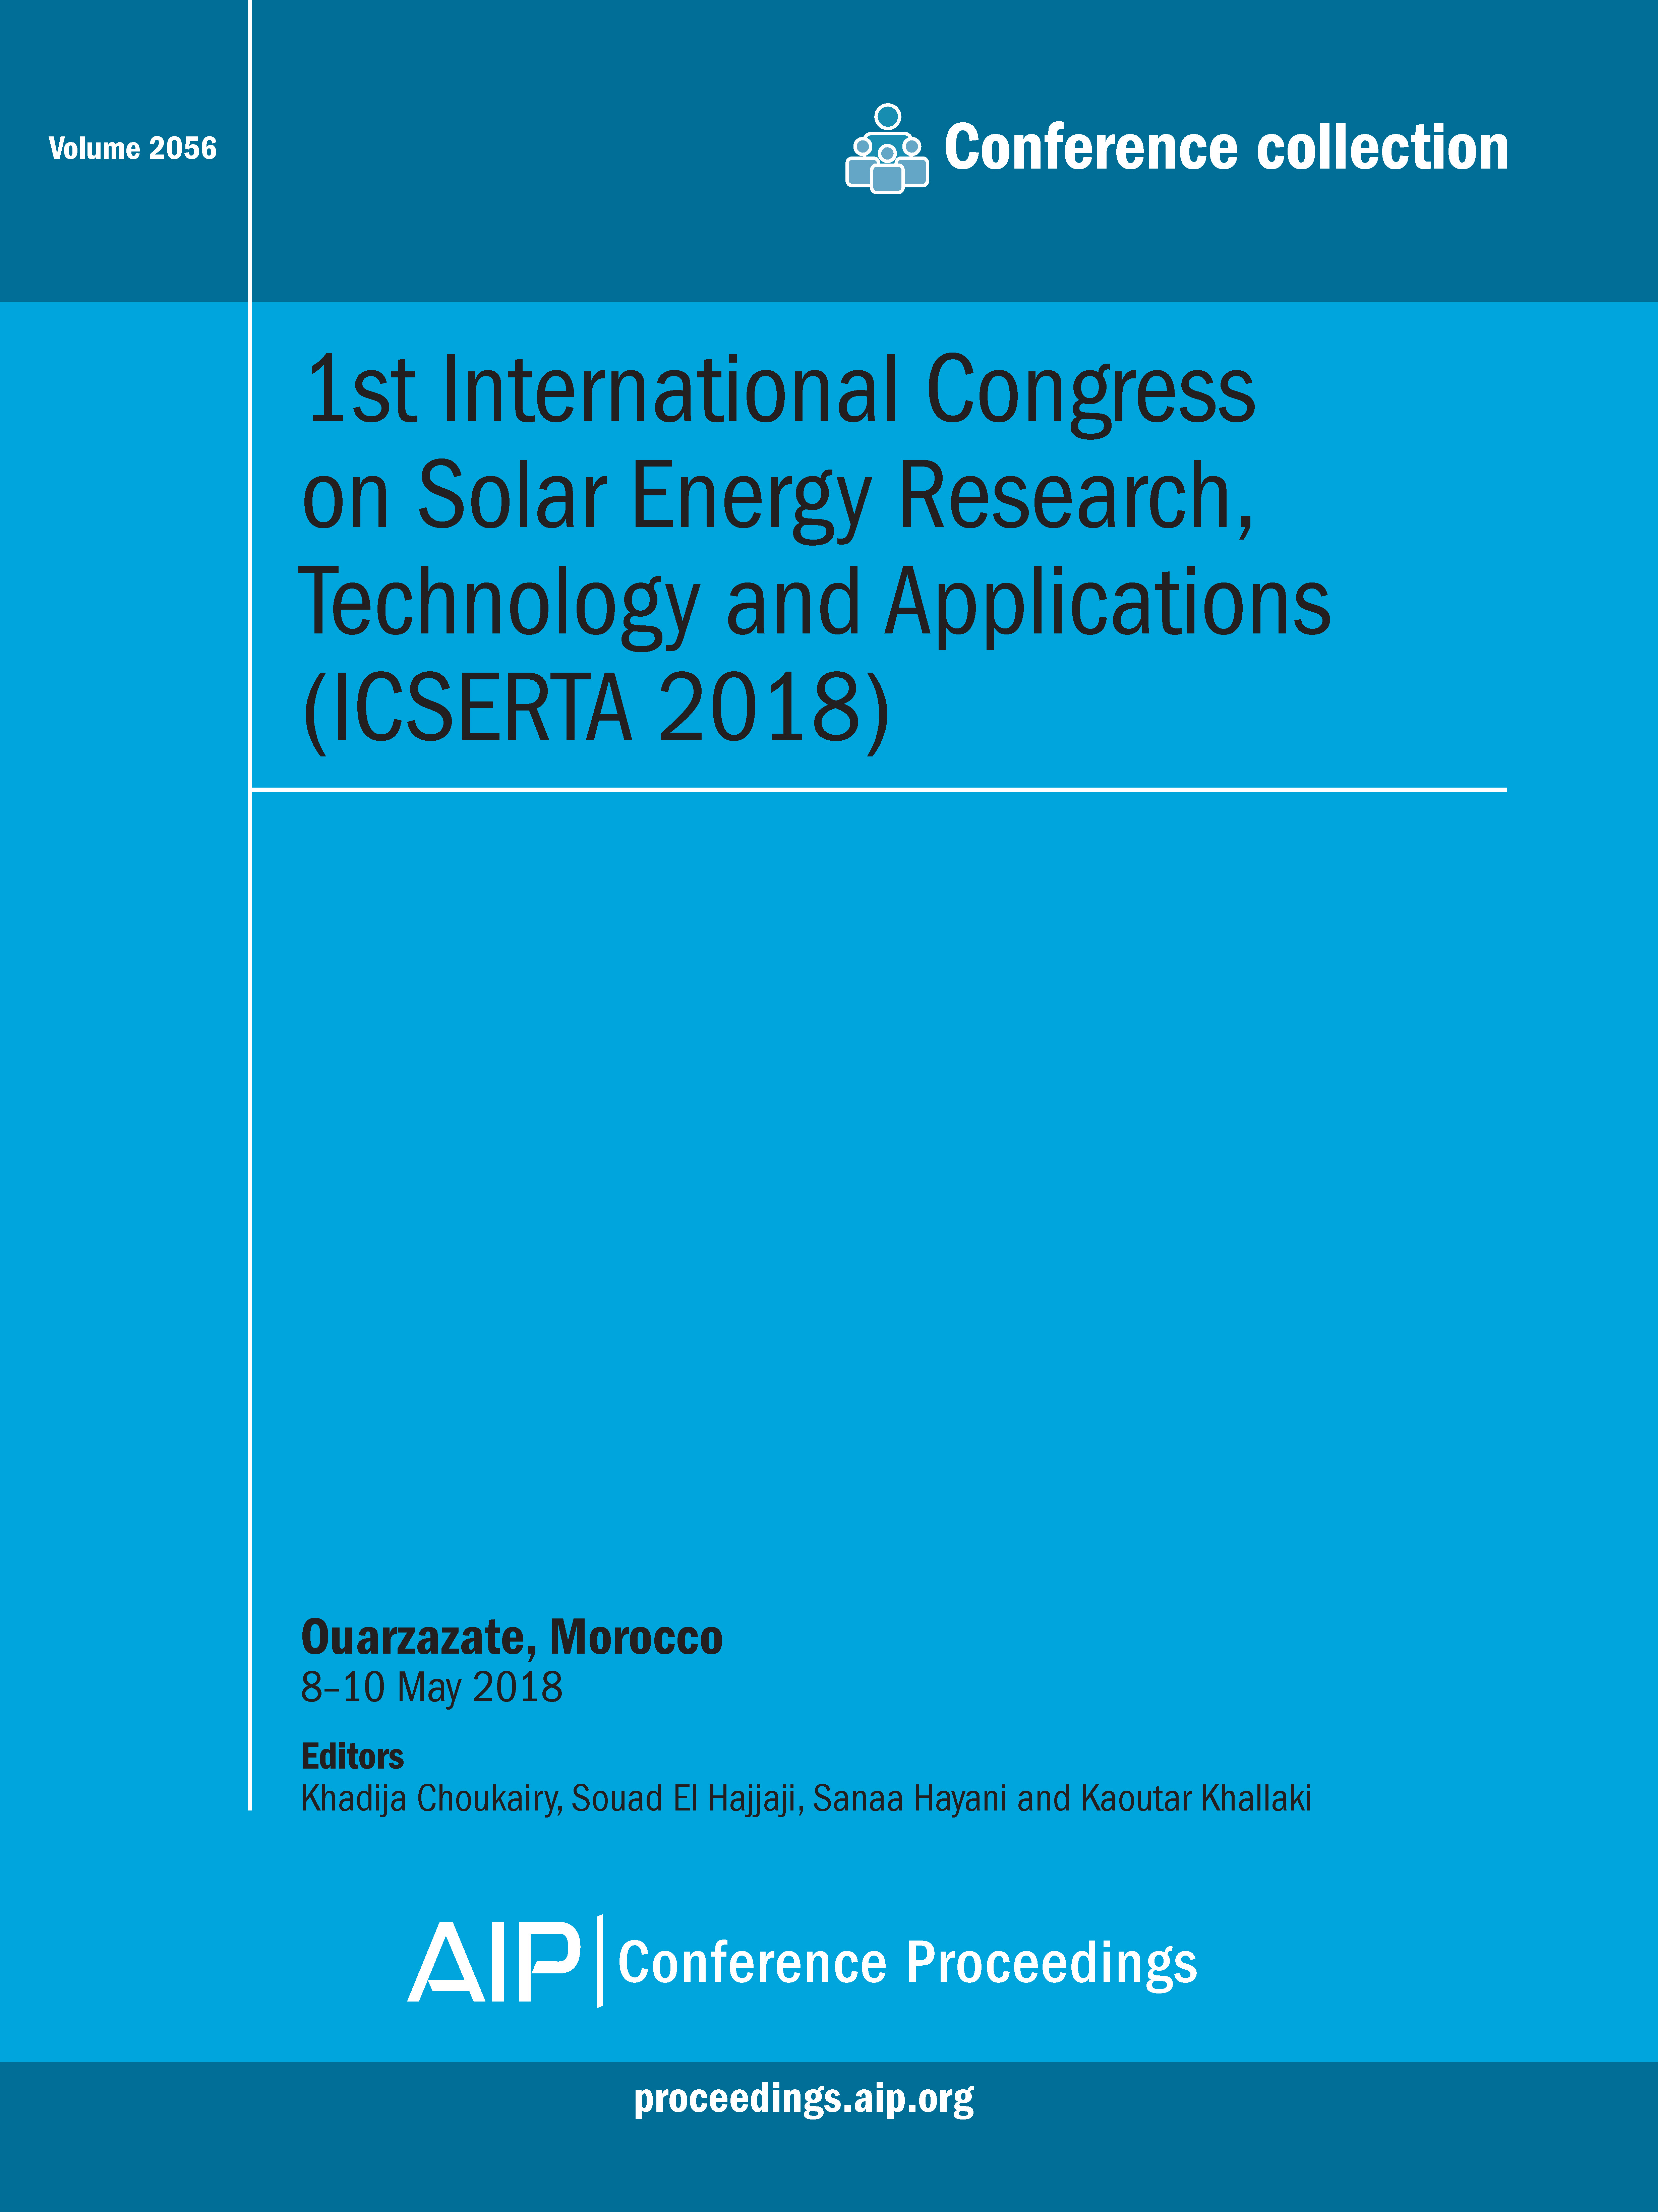 Volume 2056: 1st International Congress on Solar Energy Research,  Technology and Applications (ICSERTA 2018)